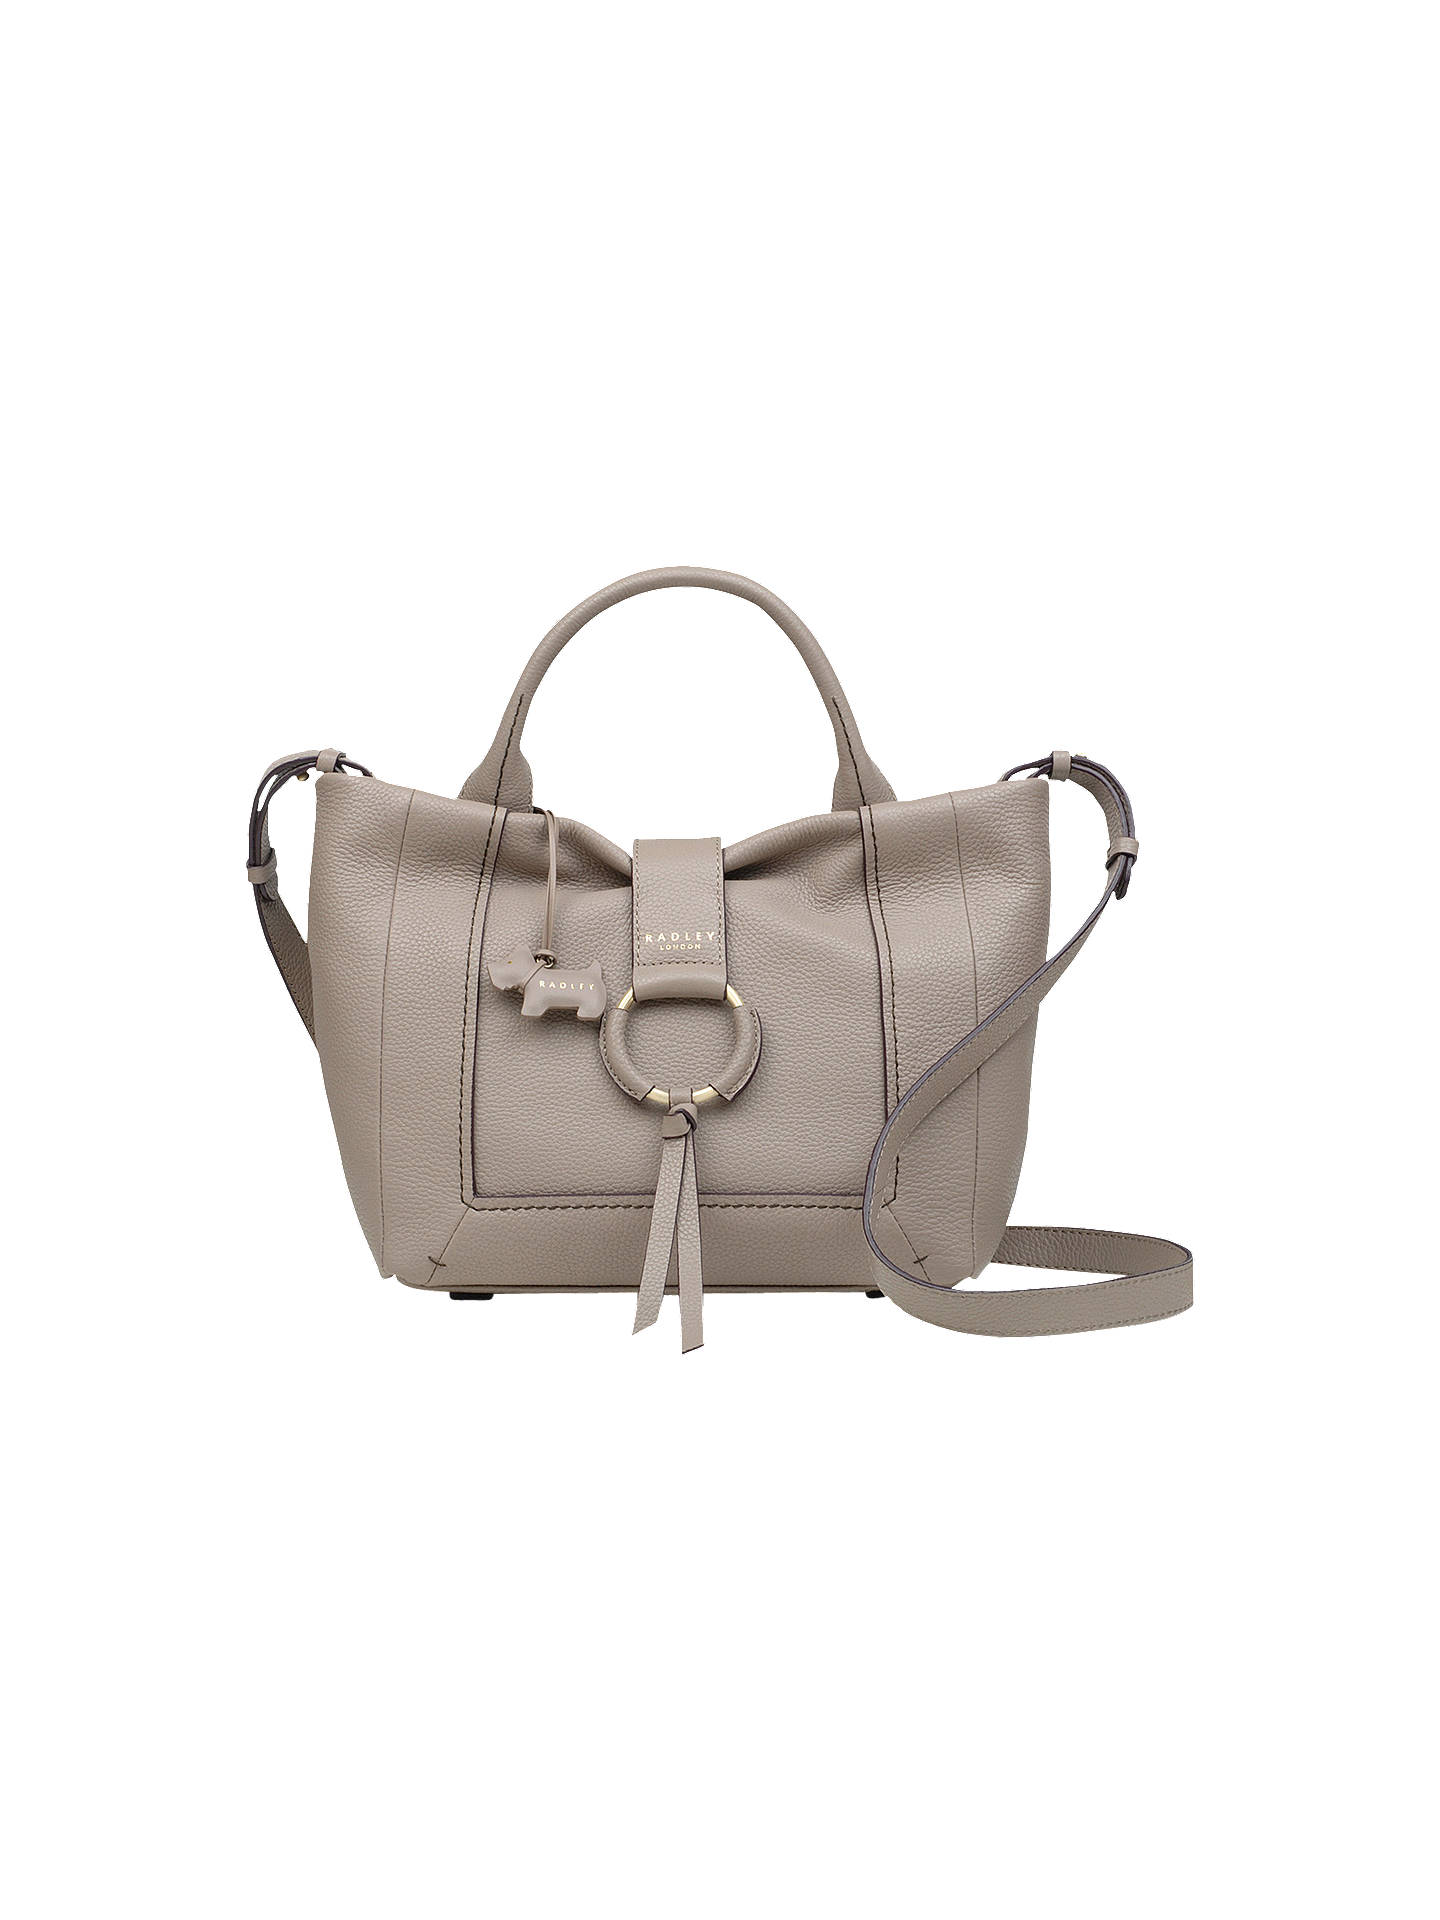 BuyRadley Blickling Hall Medium Zip-Top Leather Grab Bag, Brown Online at johnlewis.com